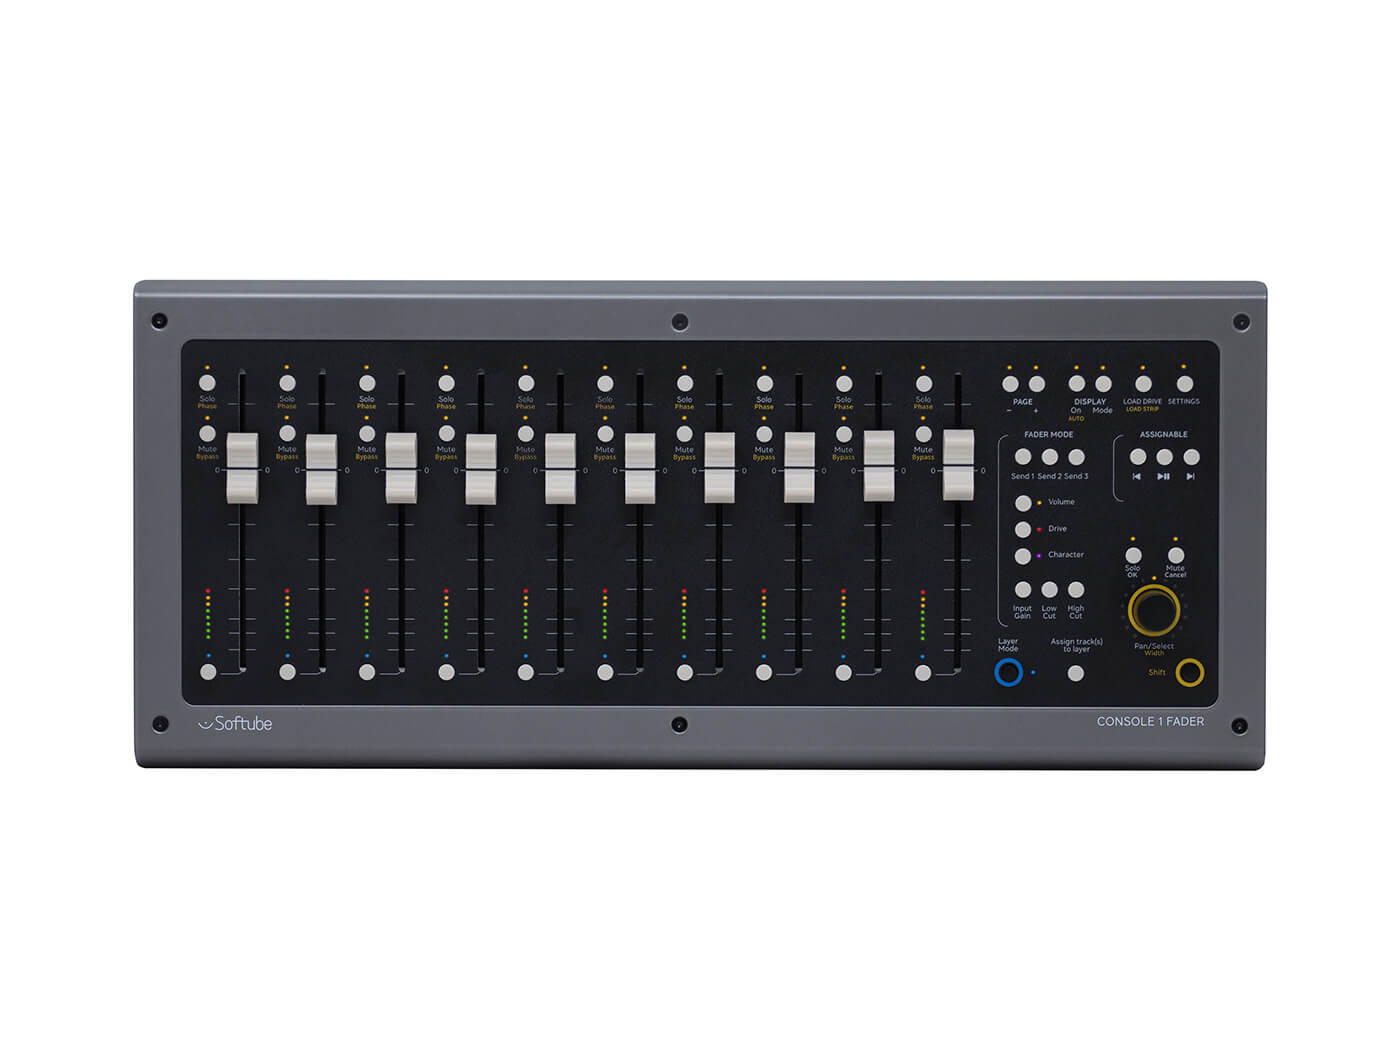 Softube launch Console 1 Fader controller